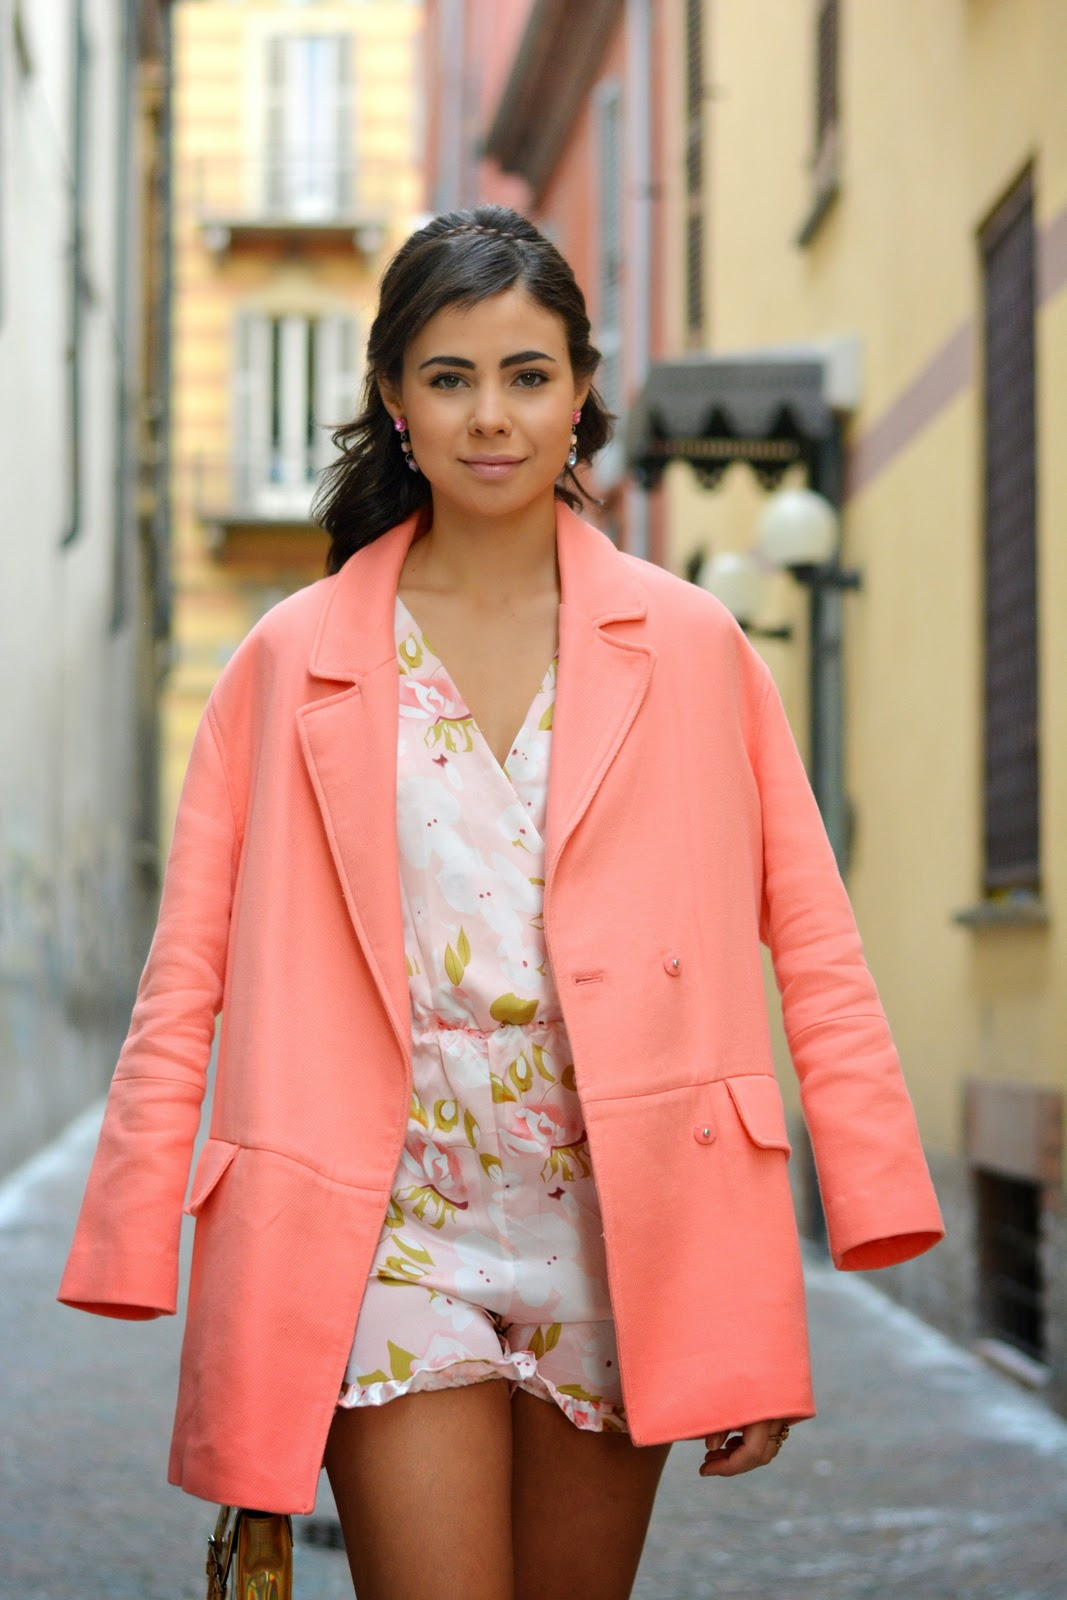 Floral Playsuit - YoYo Melody -  Outfit - Fashion Blogger - Juliane Borges